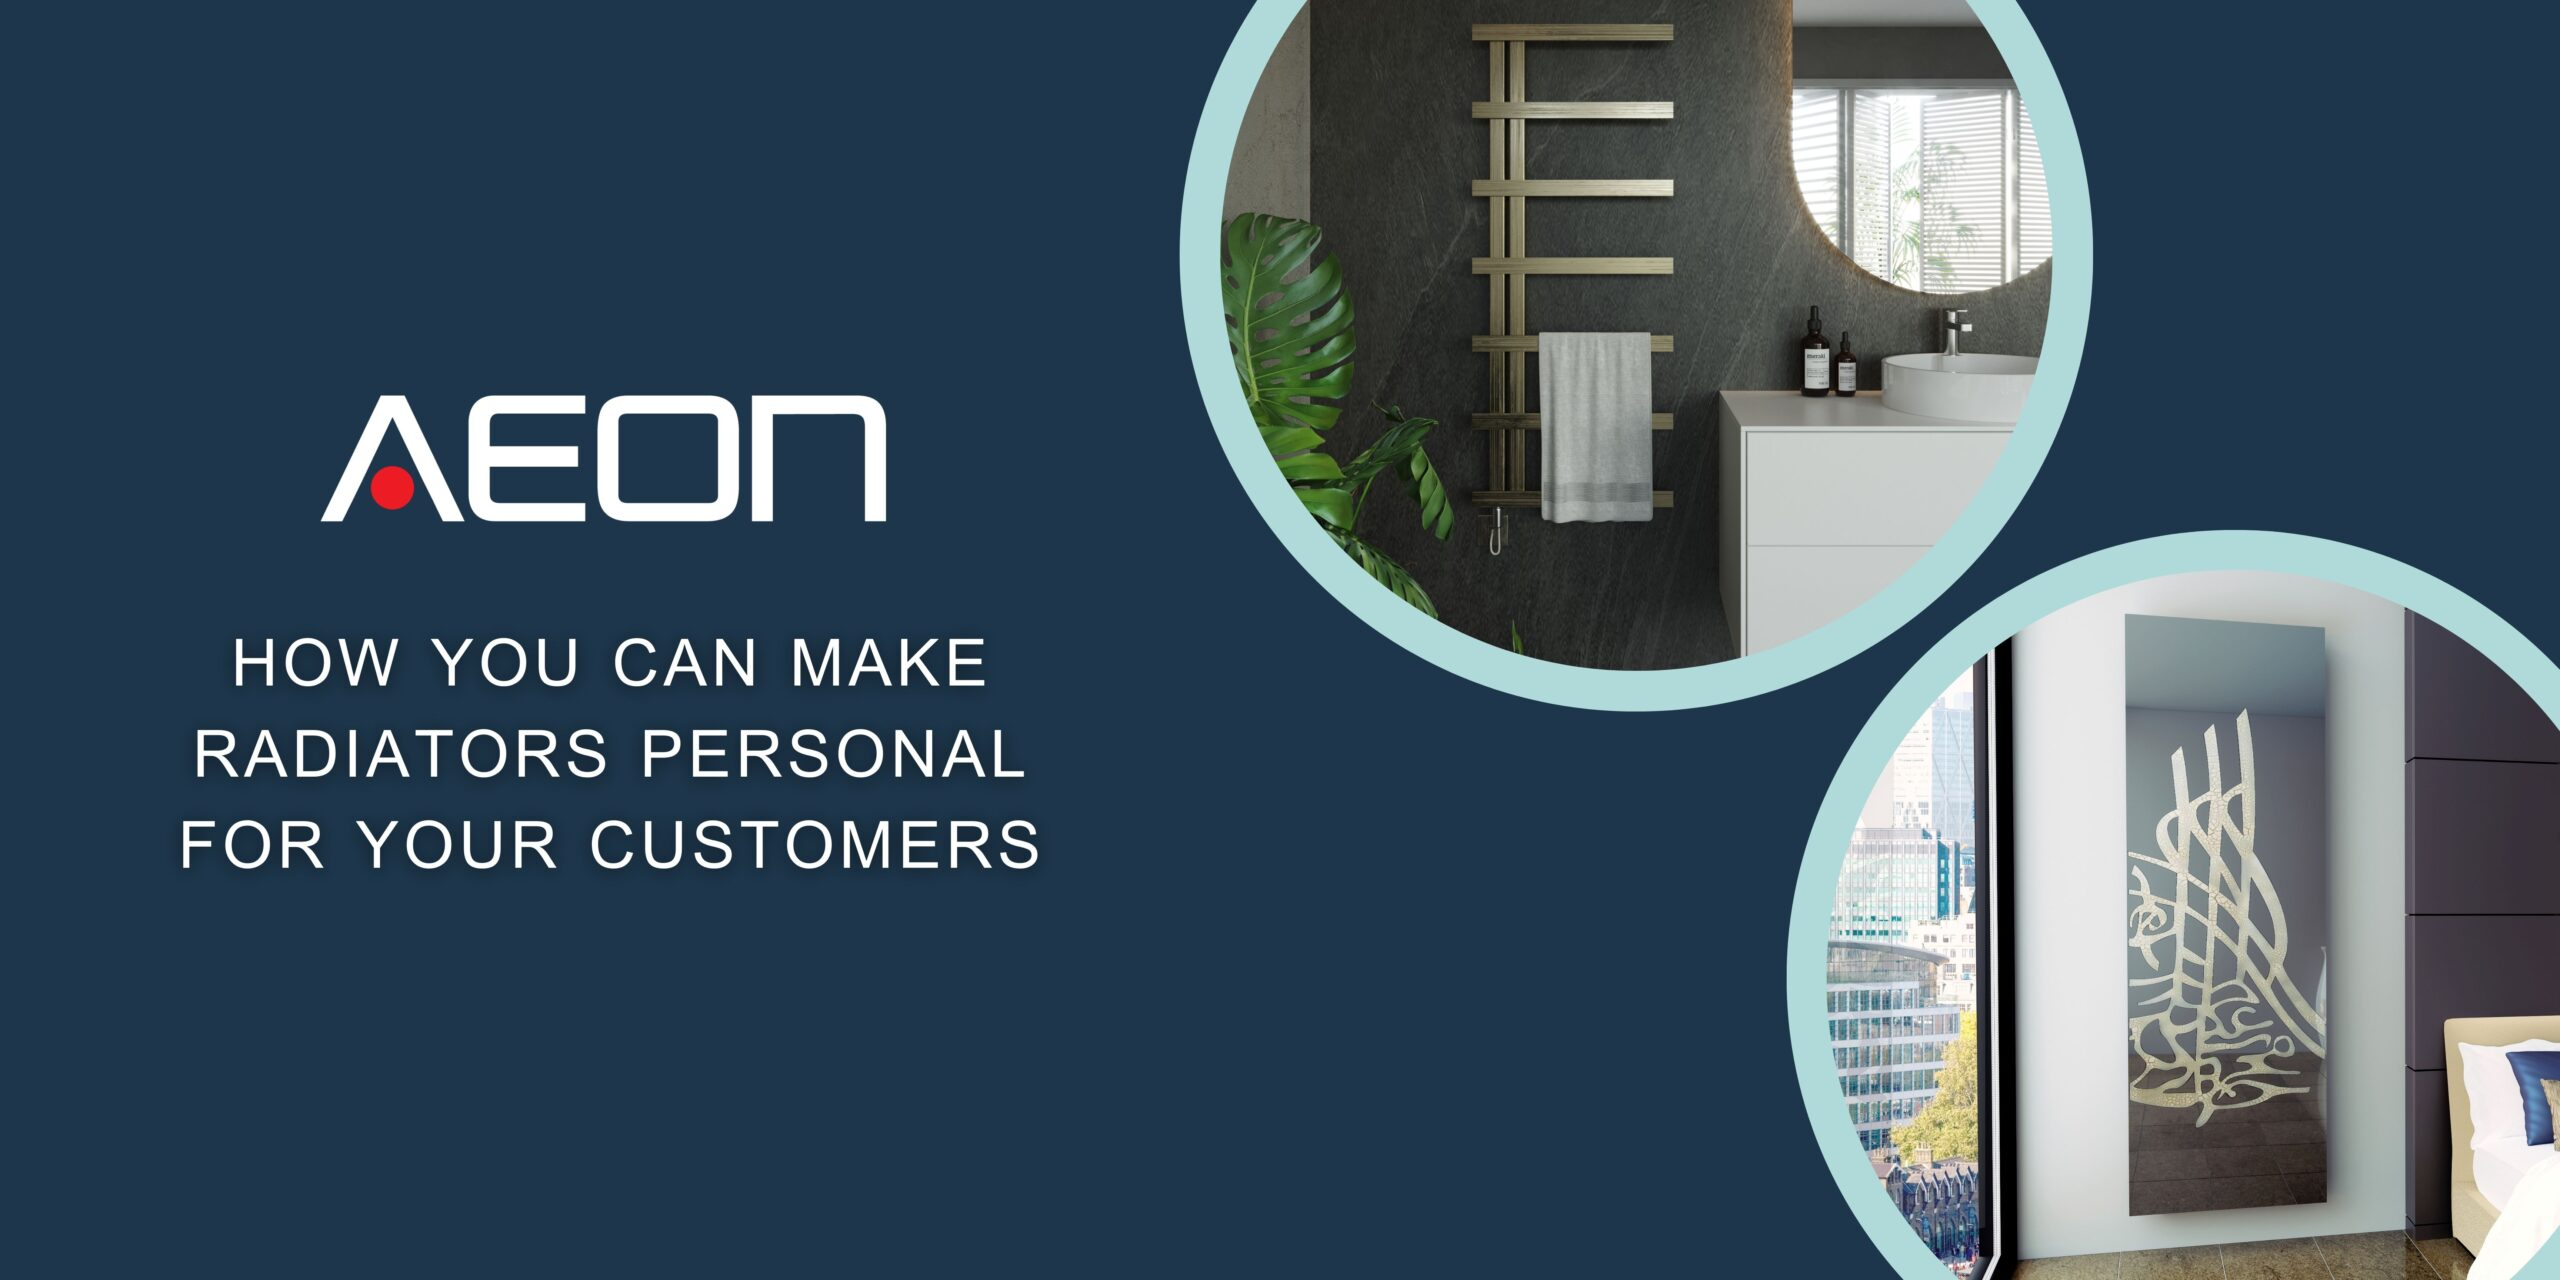 How You Can Make Radiators Personal For Your Customers